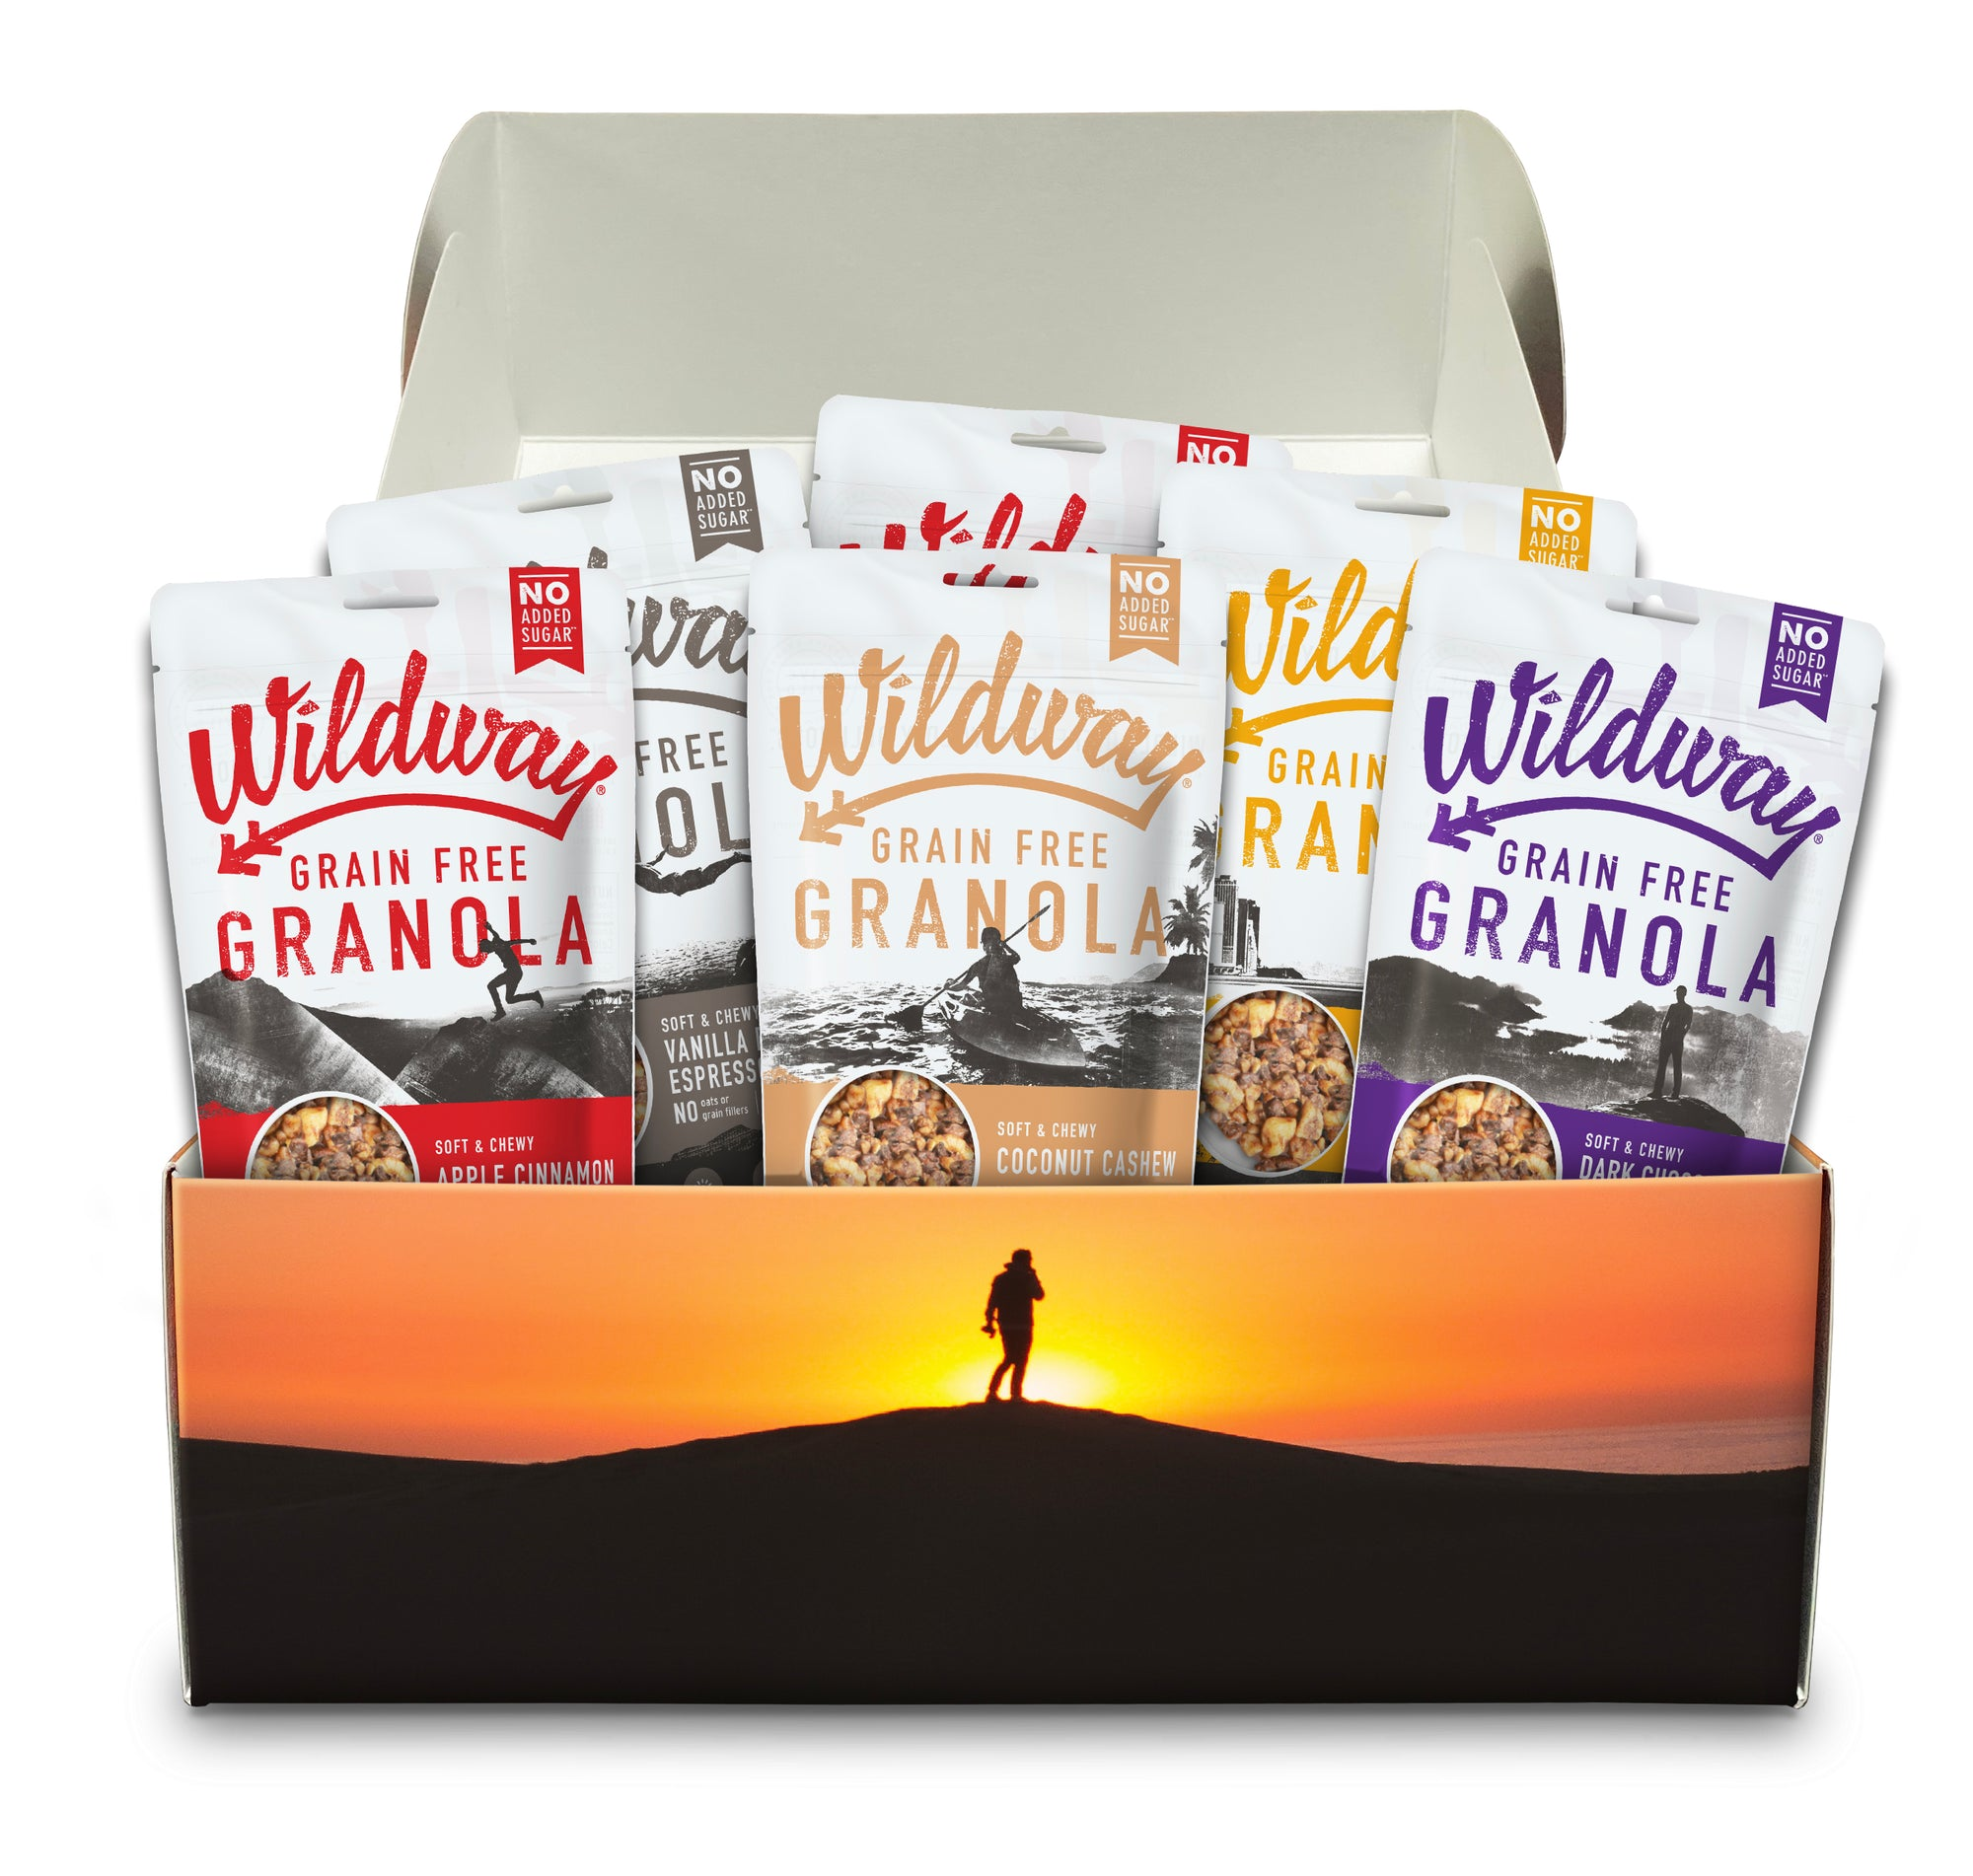 Build-a-Box Subscription: Grain-free Granola 6-Pack, 8oz